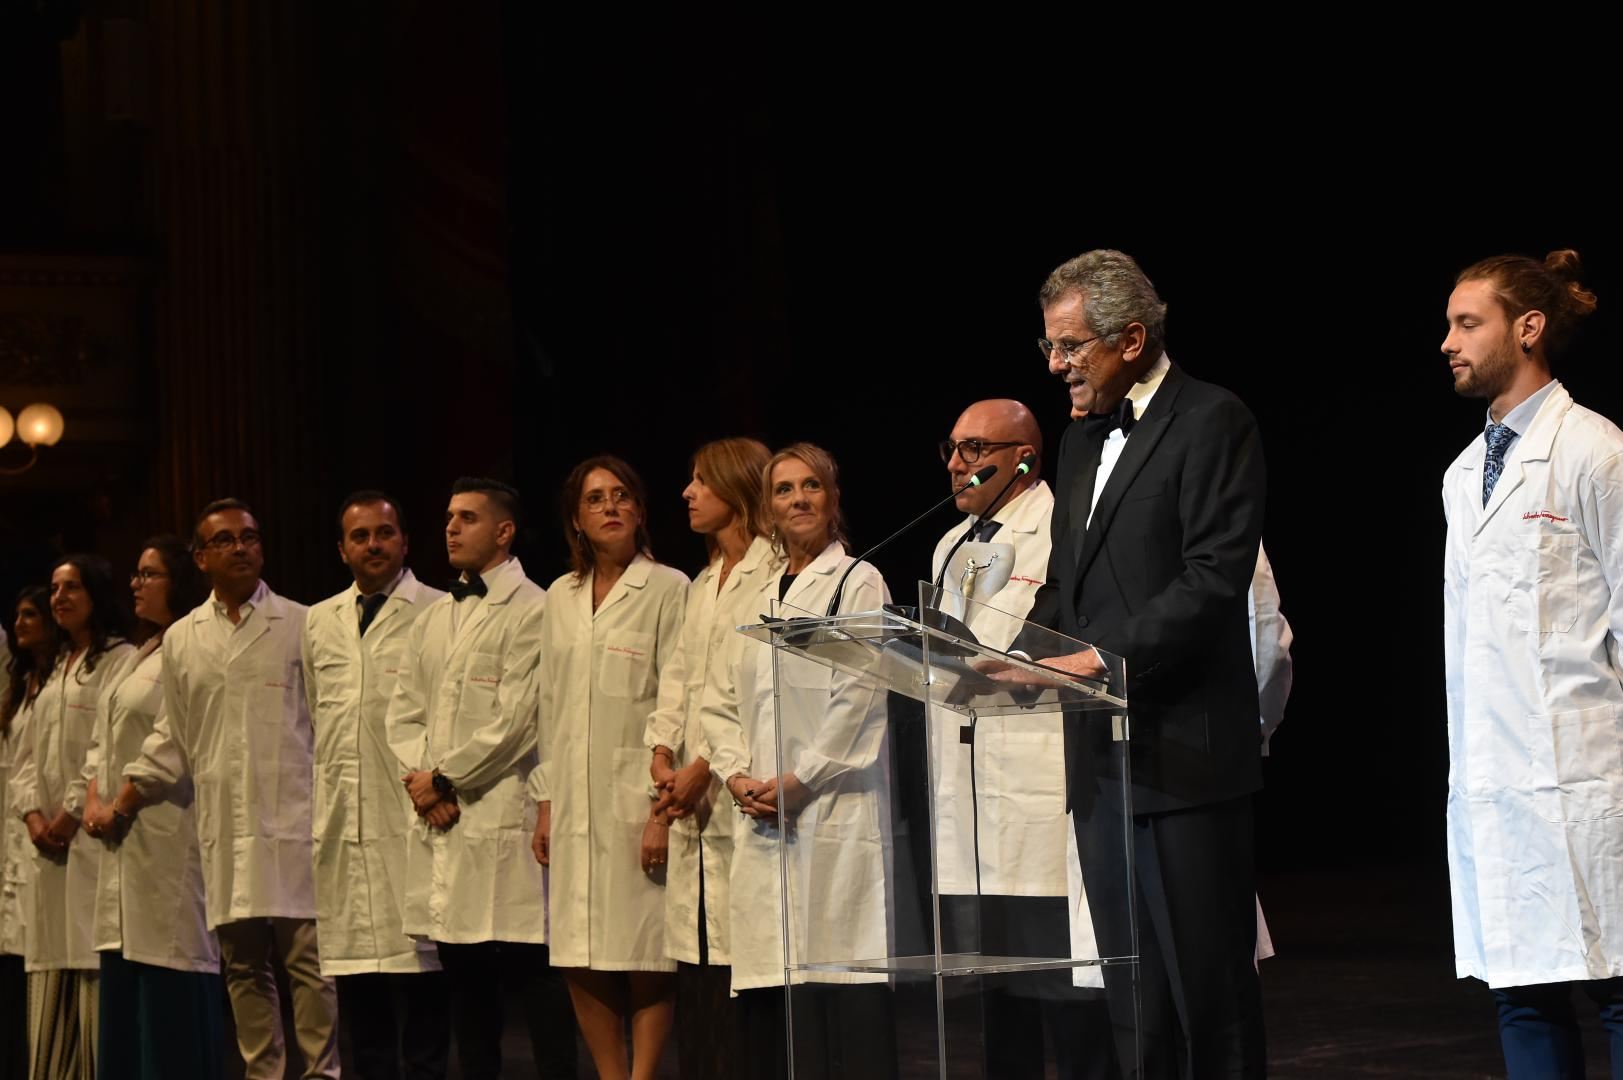 Men and women in white coats - the master cobblers of Ferragamo